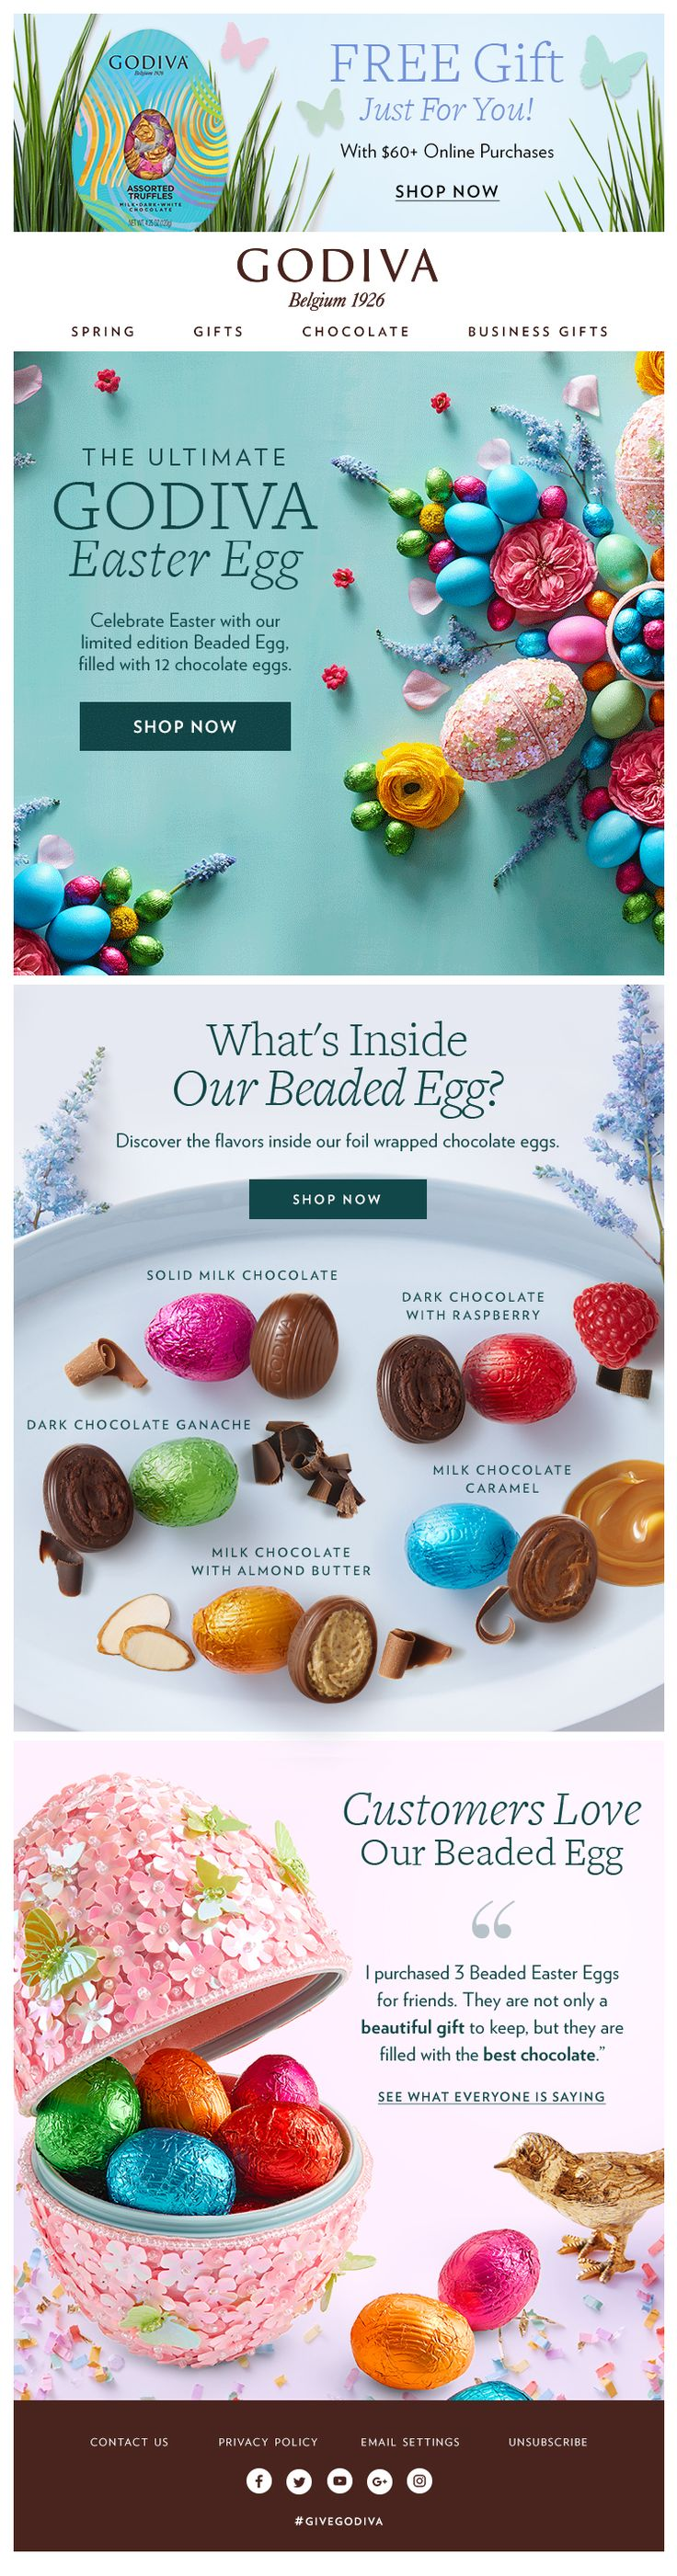 94 best easter emails images on pinterest email marketing godiva helps customers hop into spring with this bright and fresh easter inspired marketing newsletter negle Image collections